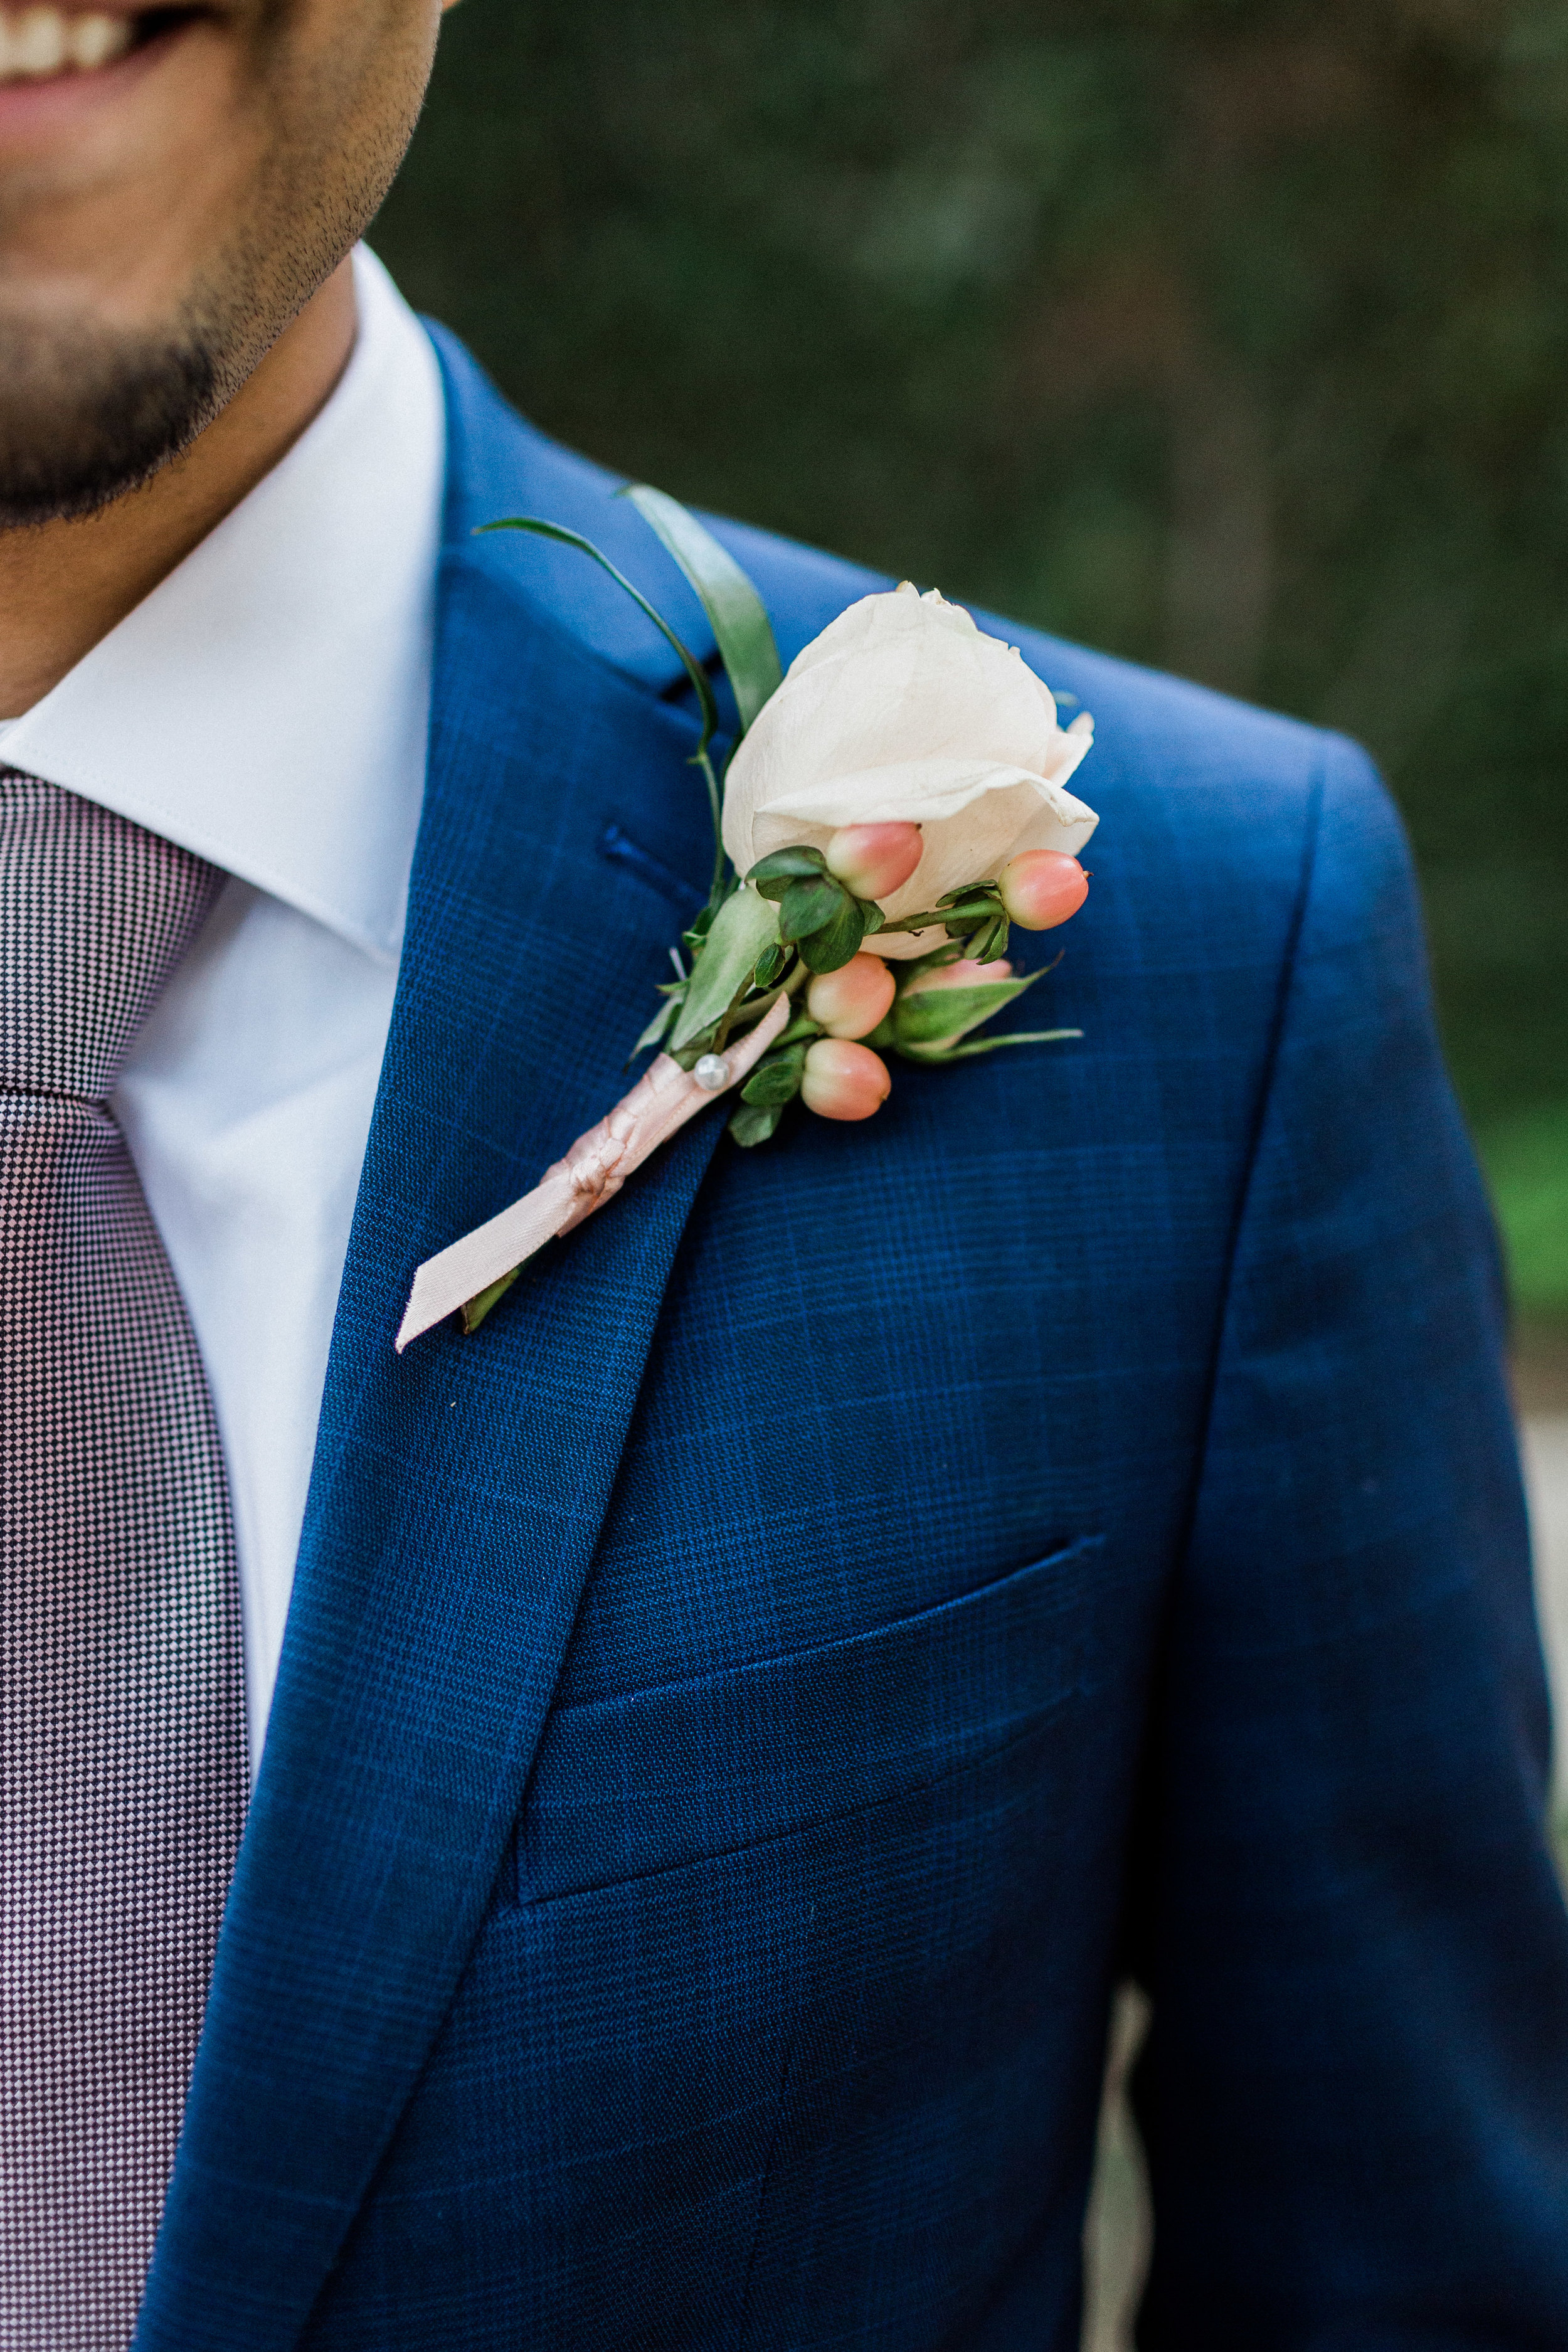 Groom boutonniere at Outdoor Wedding in Fort Worth Texas at Artspace 111